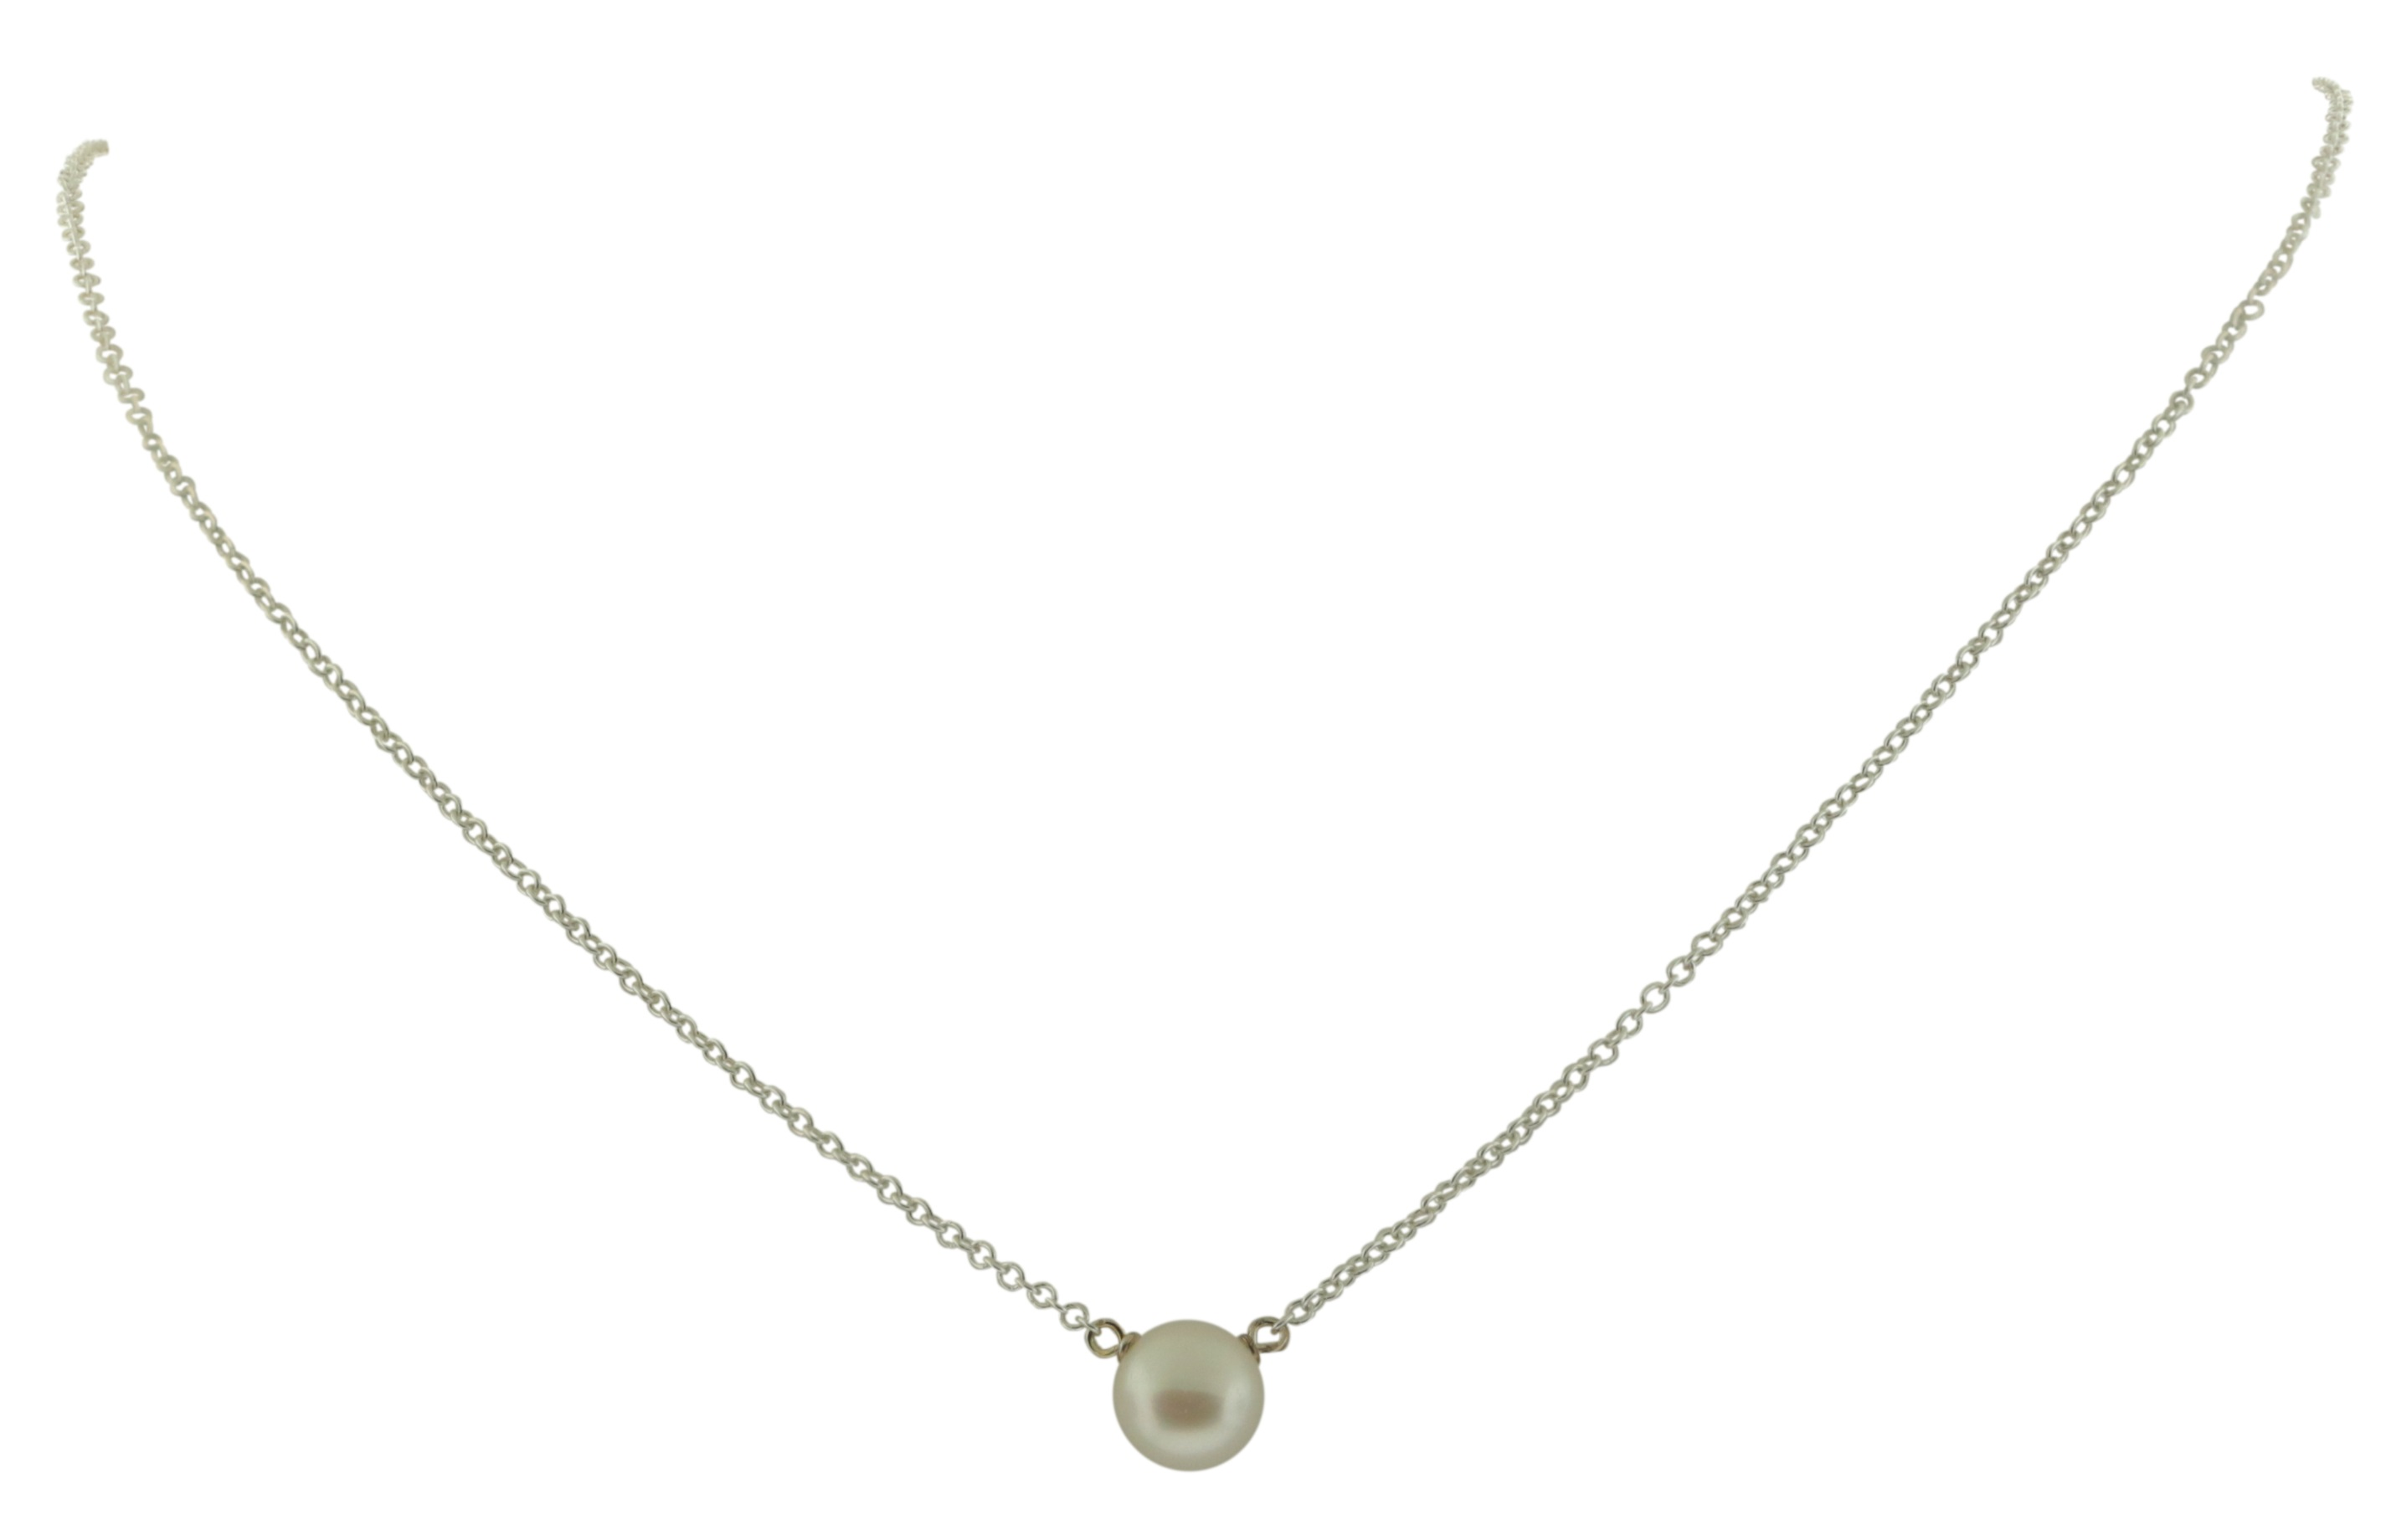 Dogeared Pearls of Wisdom White Pearl Sterling Silver Necklace - PS1021